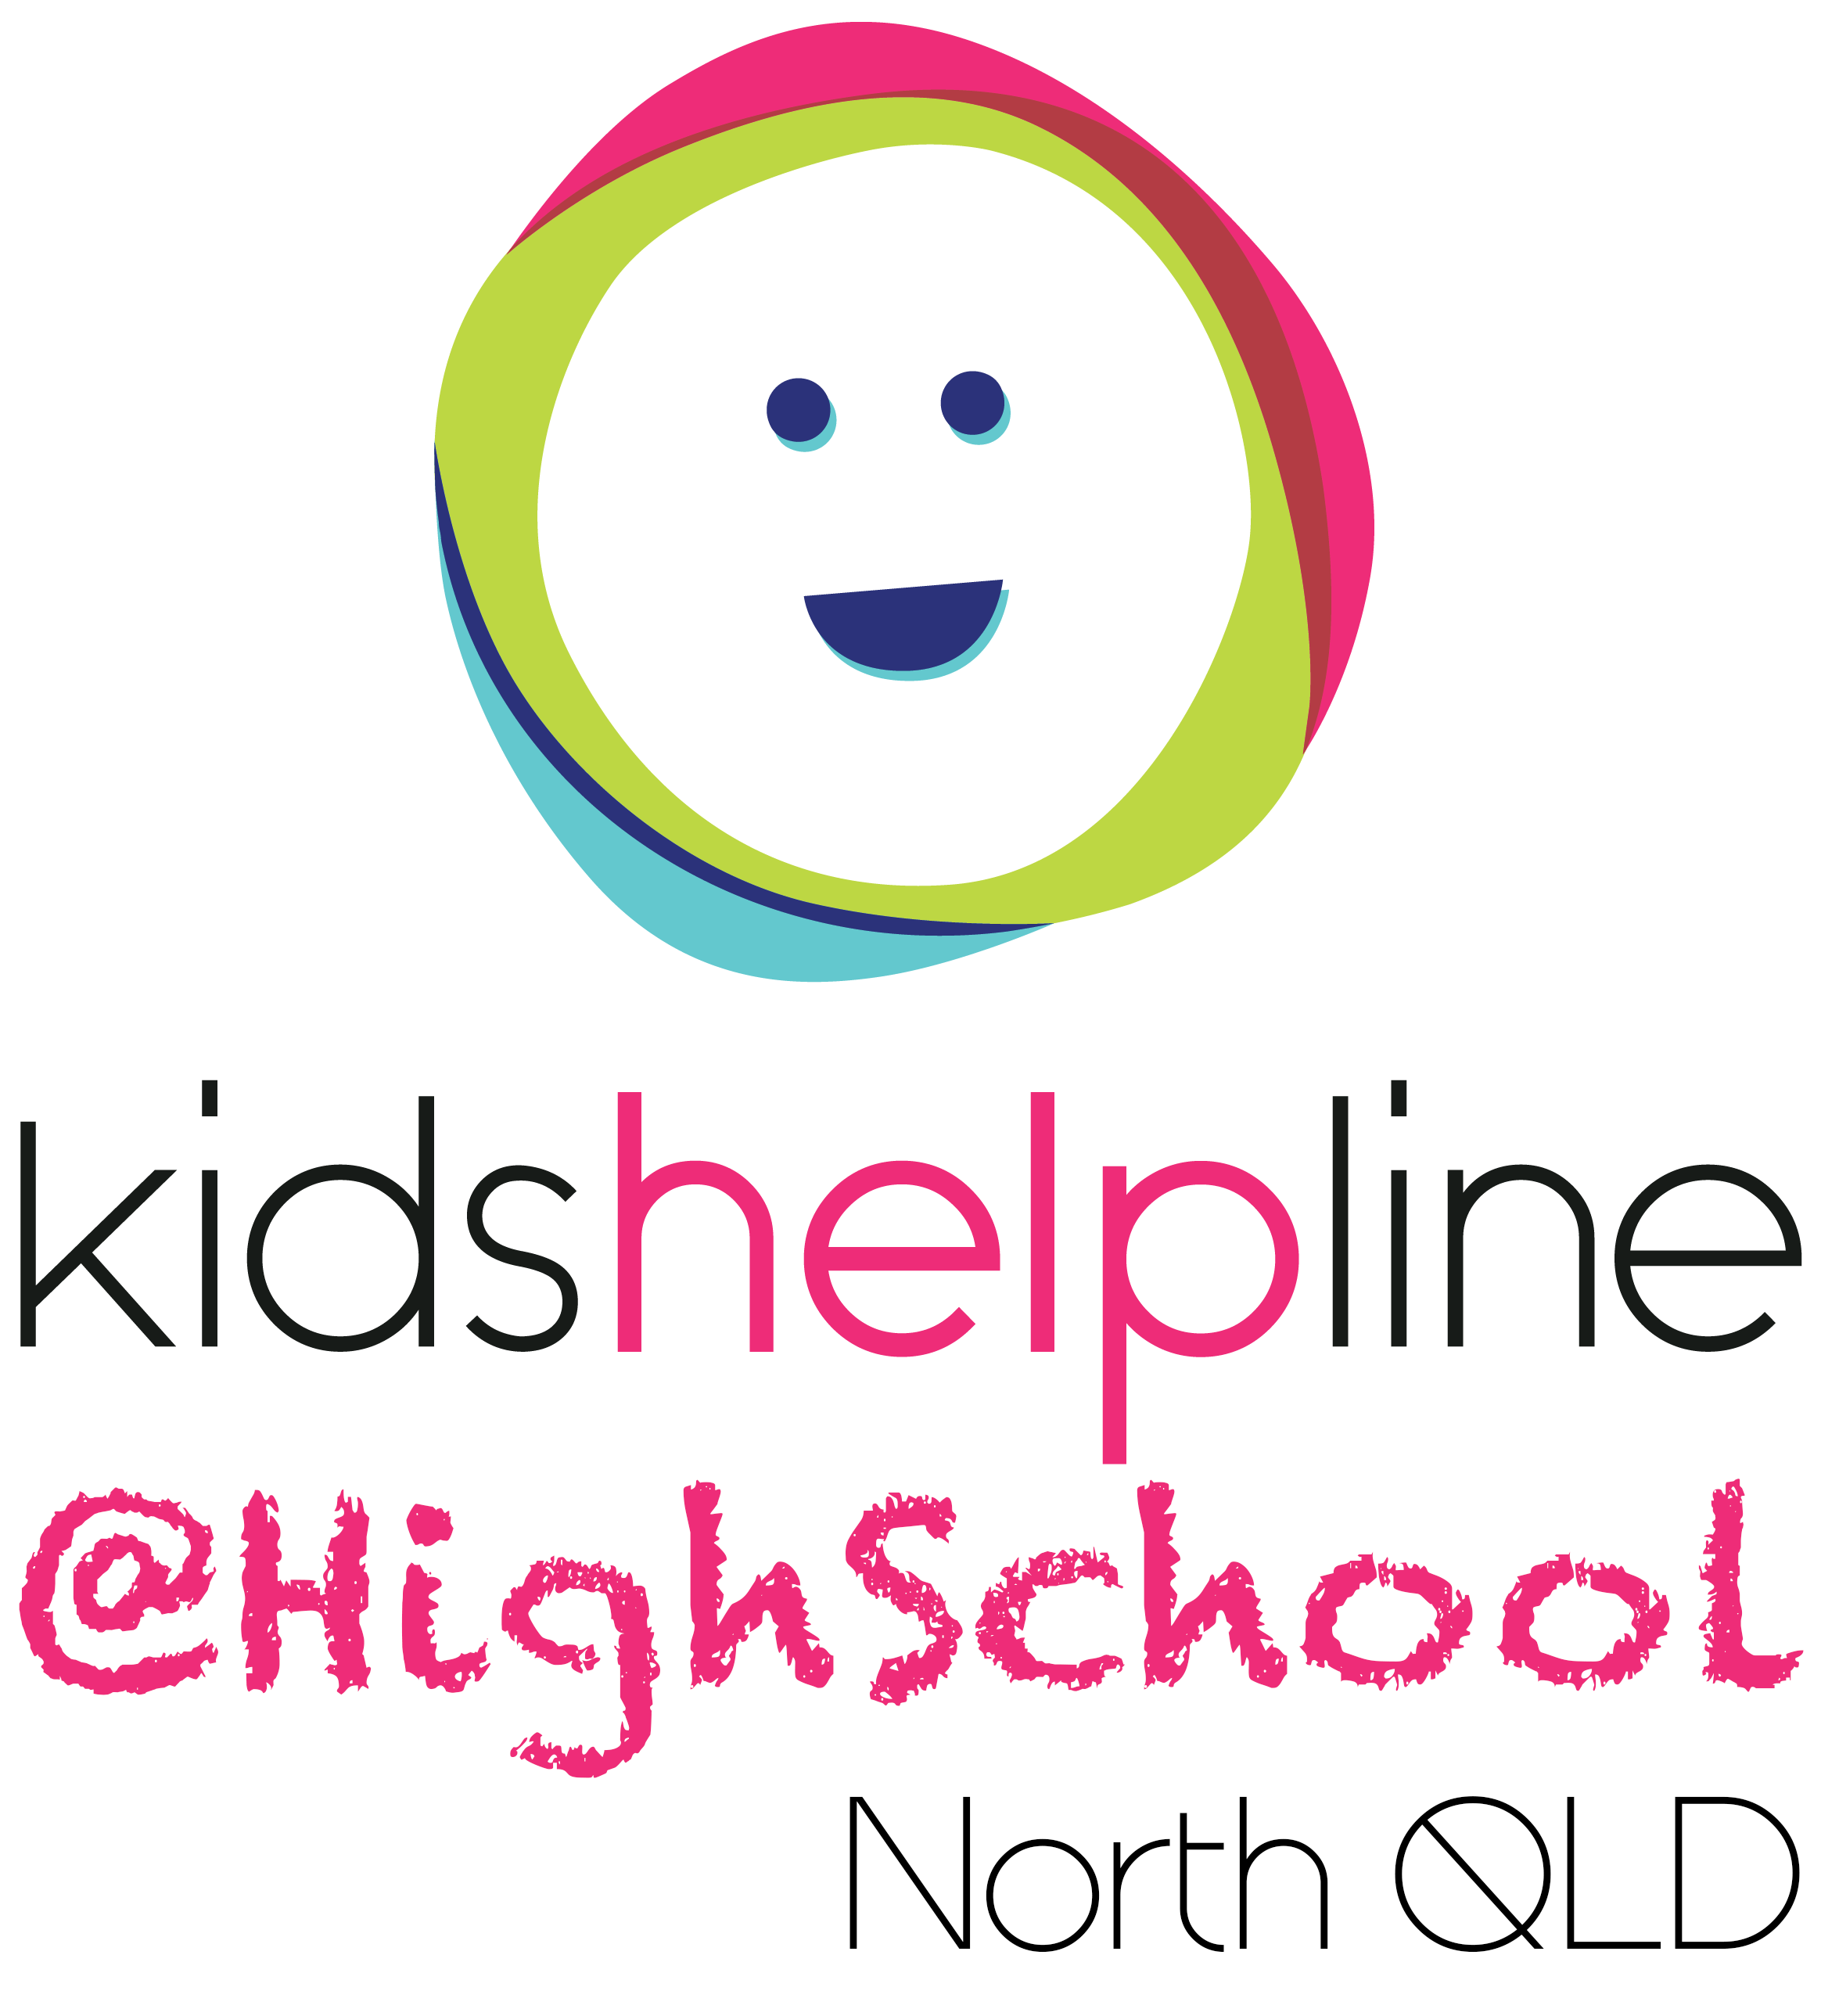 Kids Helpline @ High School (North QLD) logo